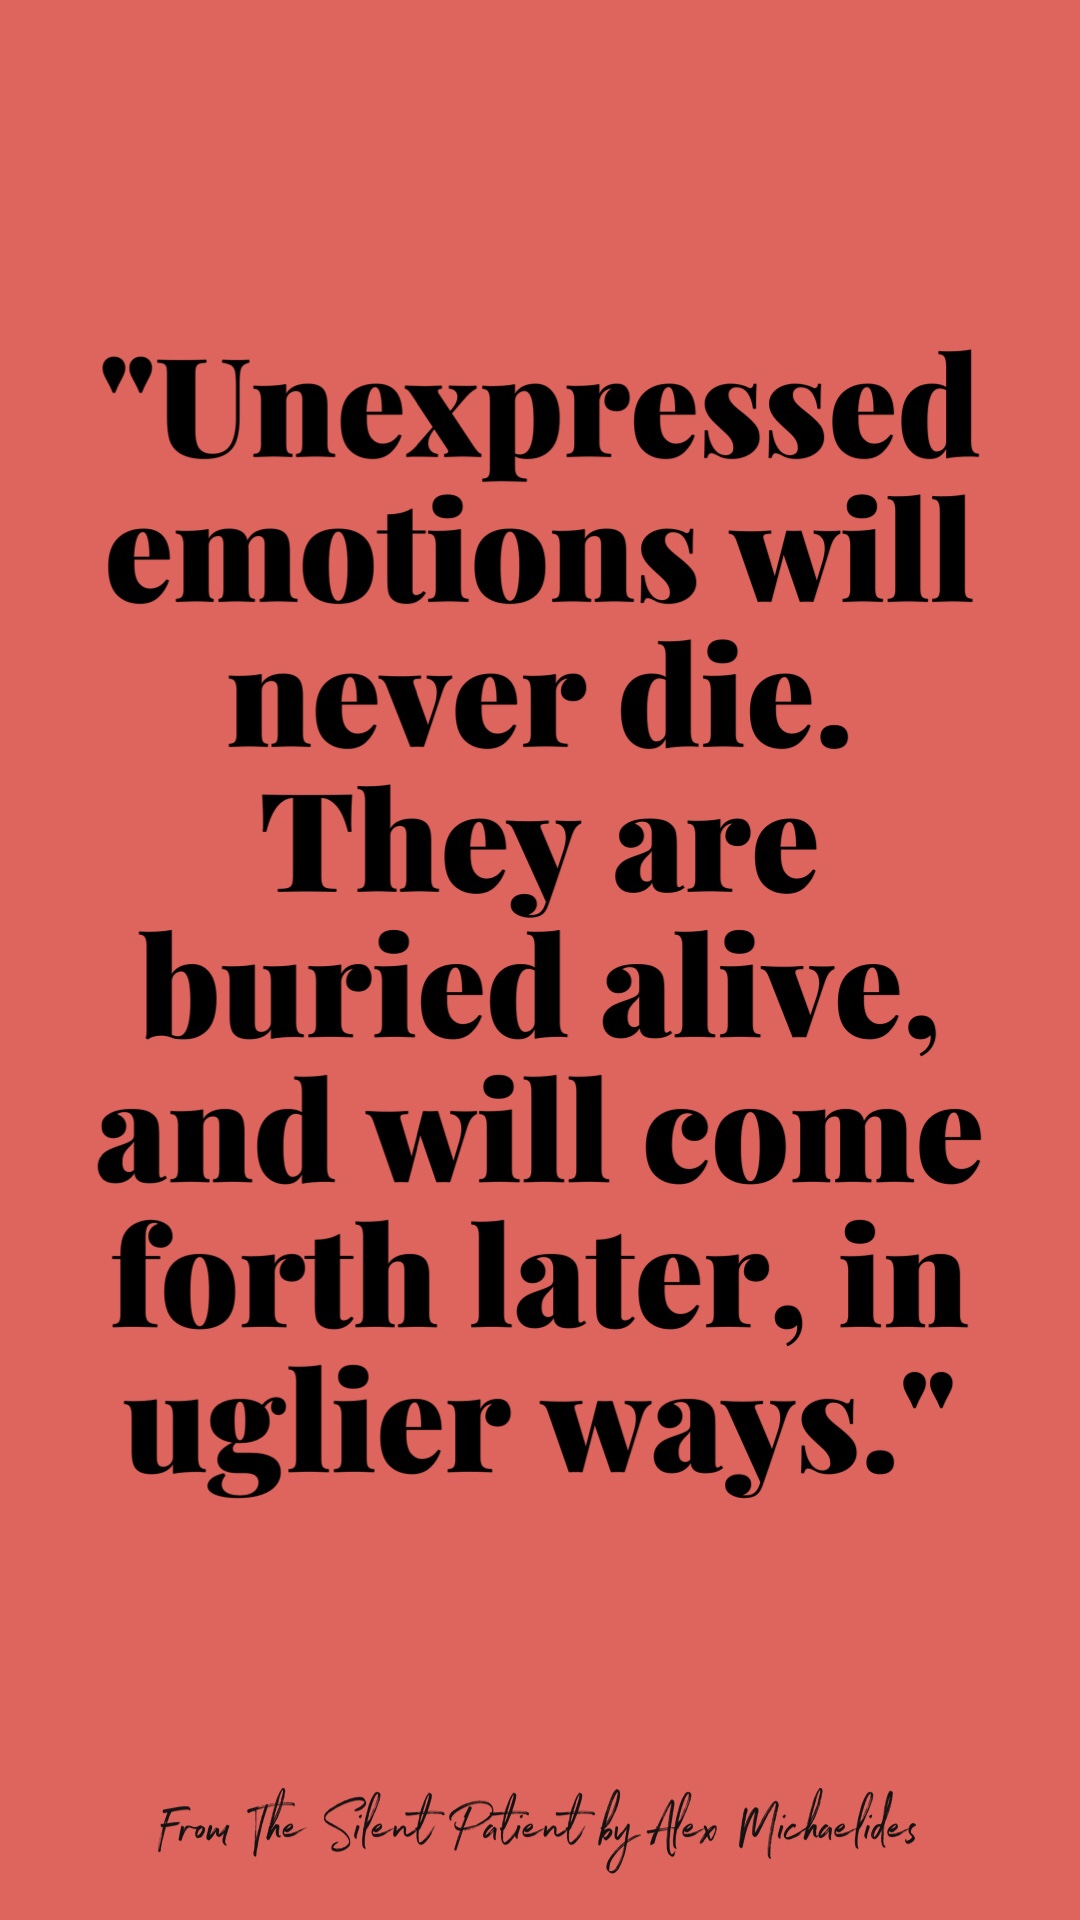 """Quote: """"Unexpressed emotions will never die. They are buried alive, and will come forth later, in uglier ways. —SIGMUND FREUD"""""""